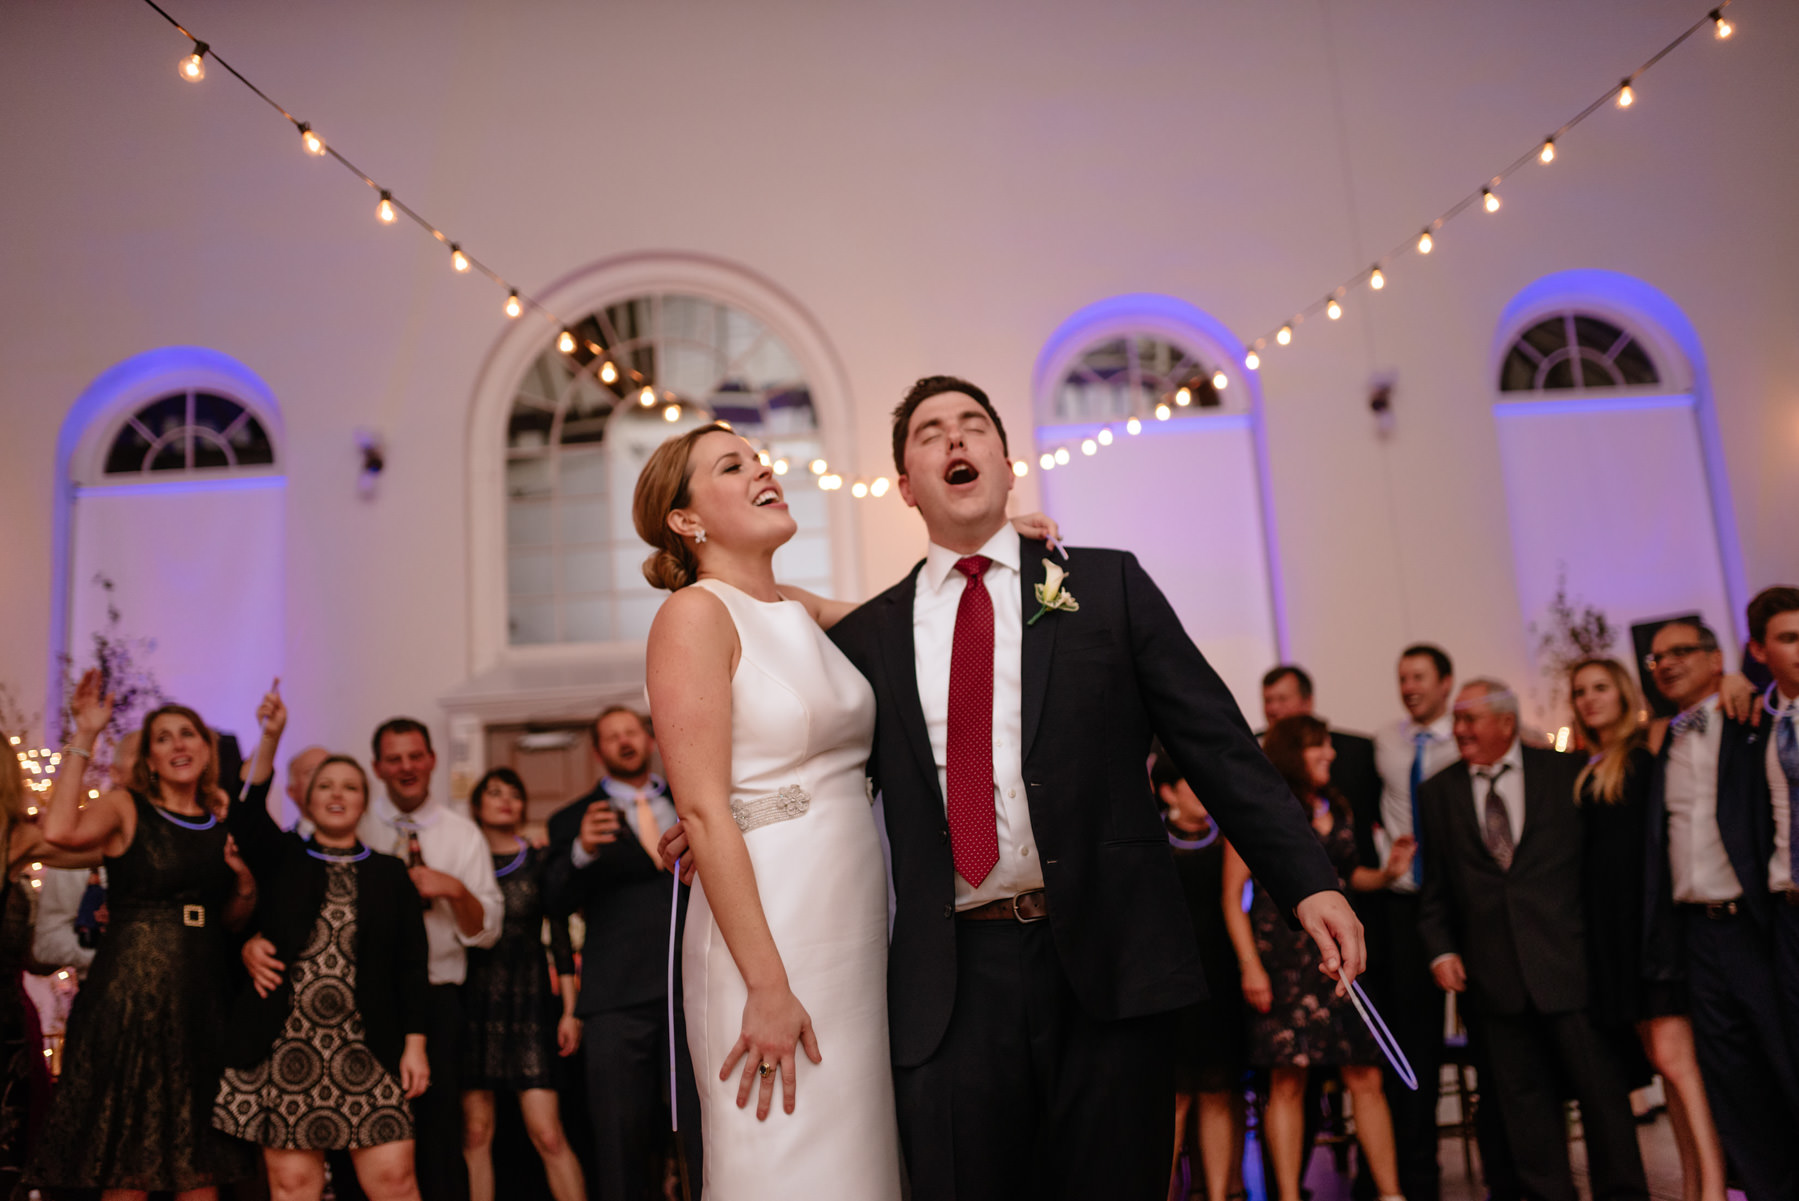 singing country roads at wedding